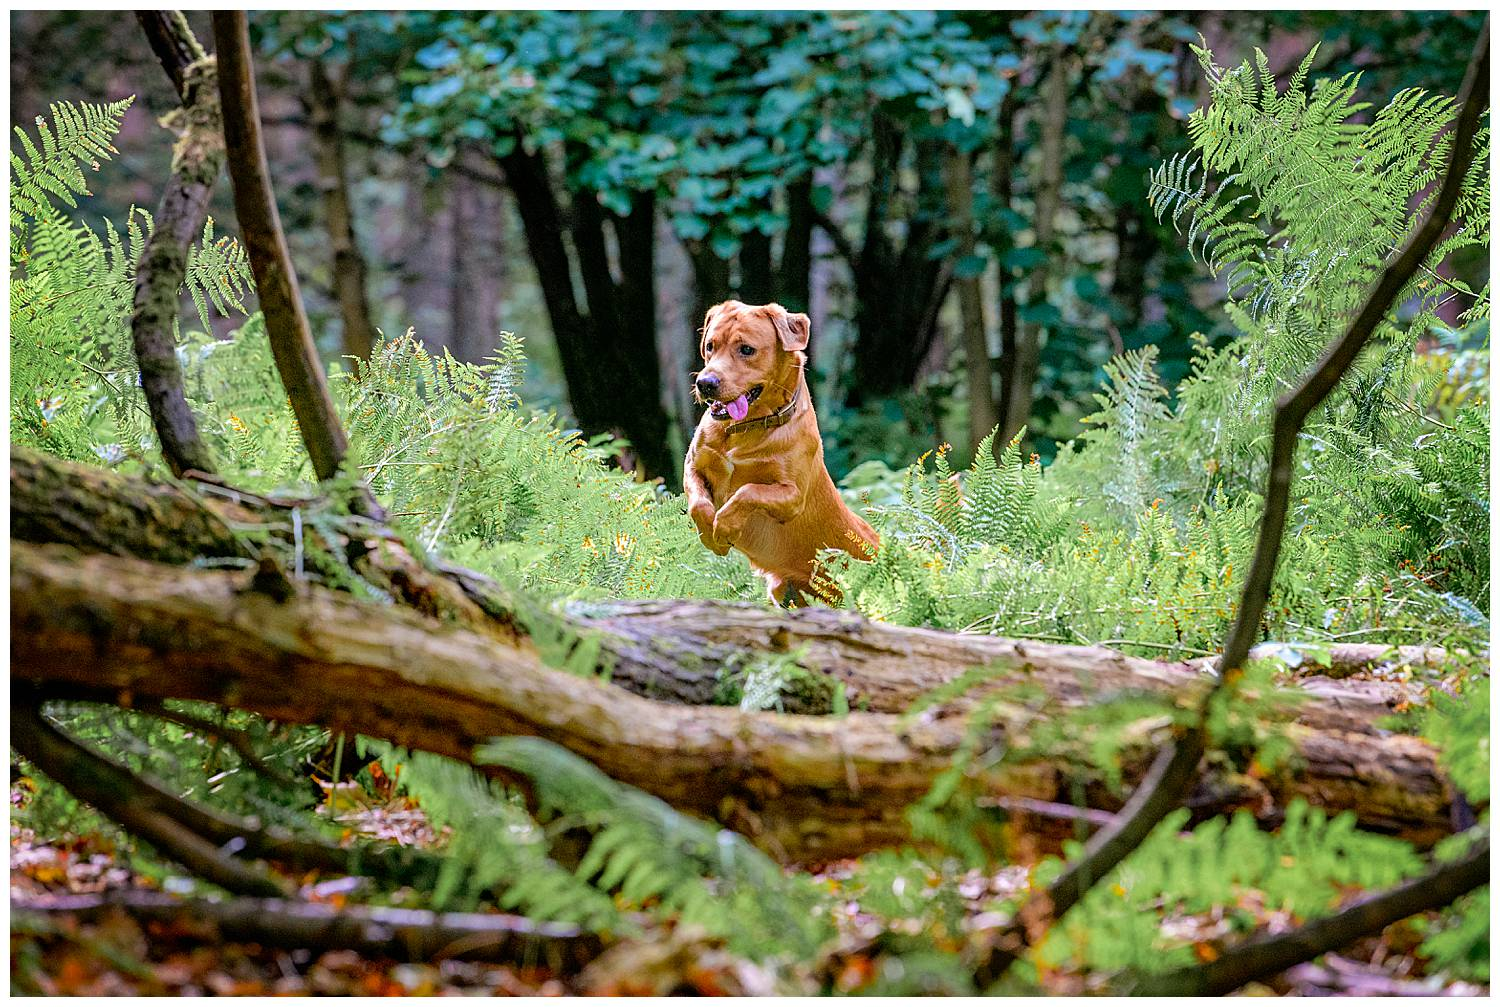 Dog jumping over a fallen tree in a forest